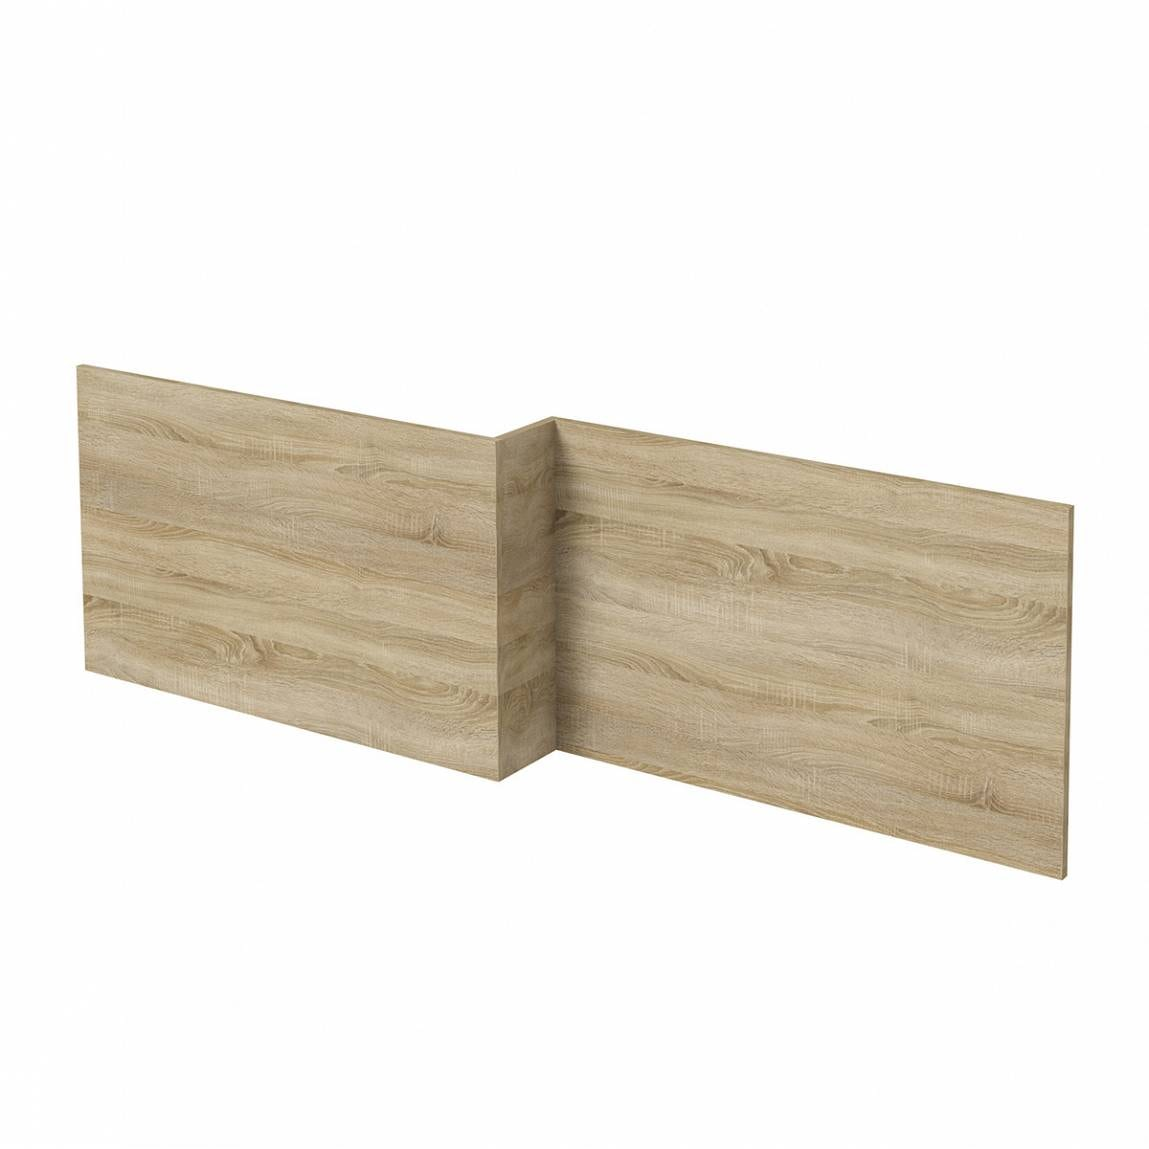 L shaped shower bath wooden front panel Drift oak 1500mm